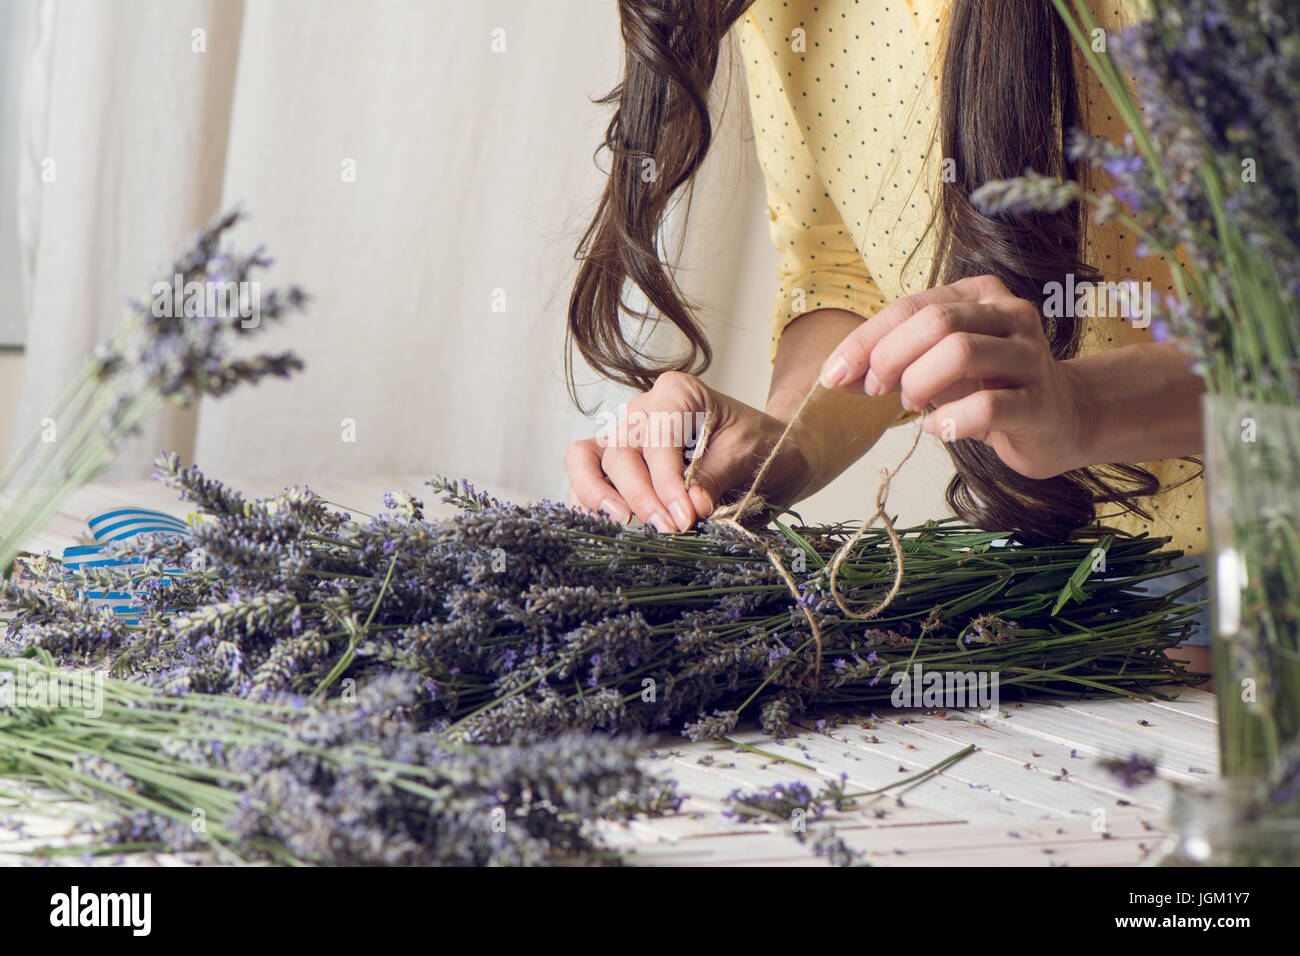 Florist at work: woman creating bouquet of natural lavender flowers, tying the flowers with a rope in te wooden - Stock Image